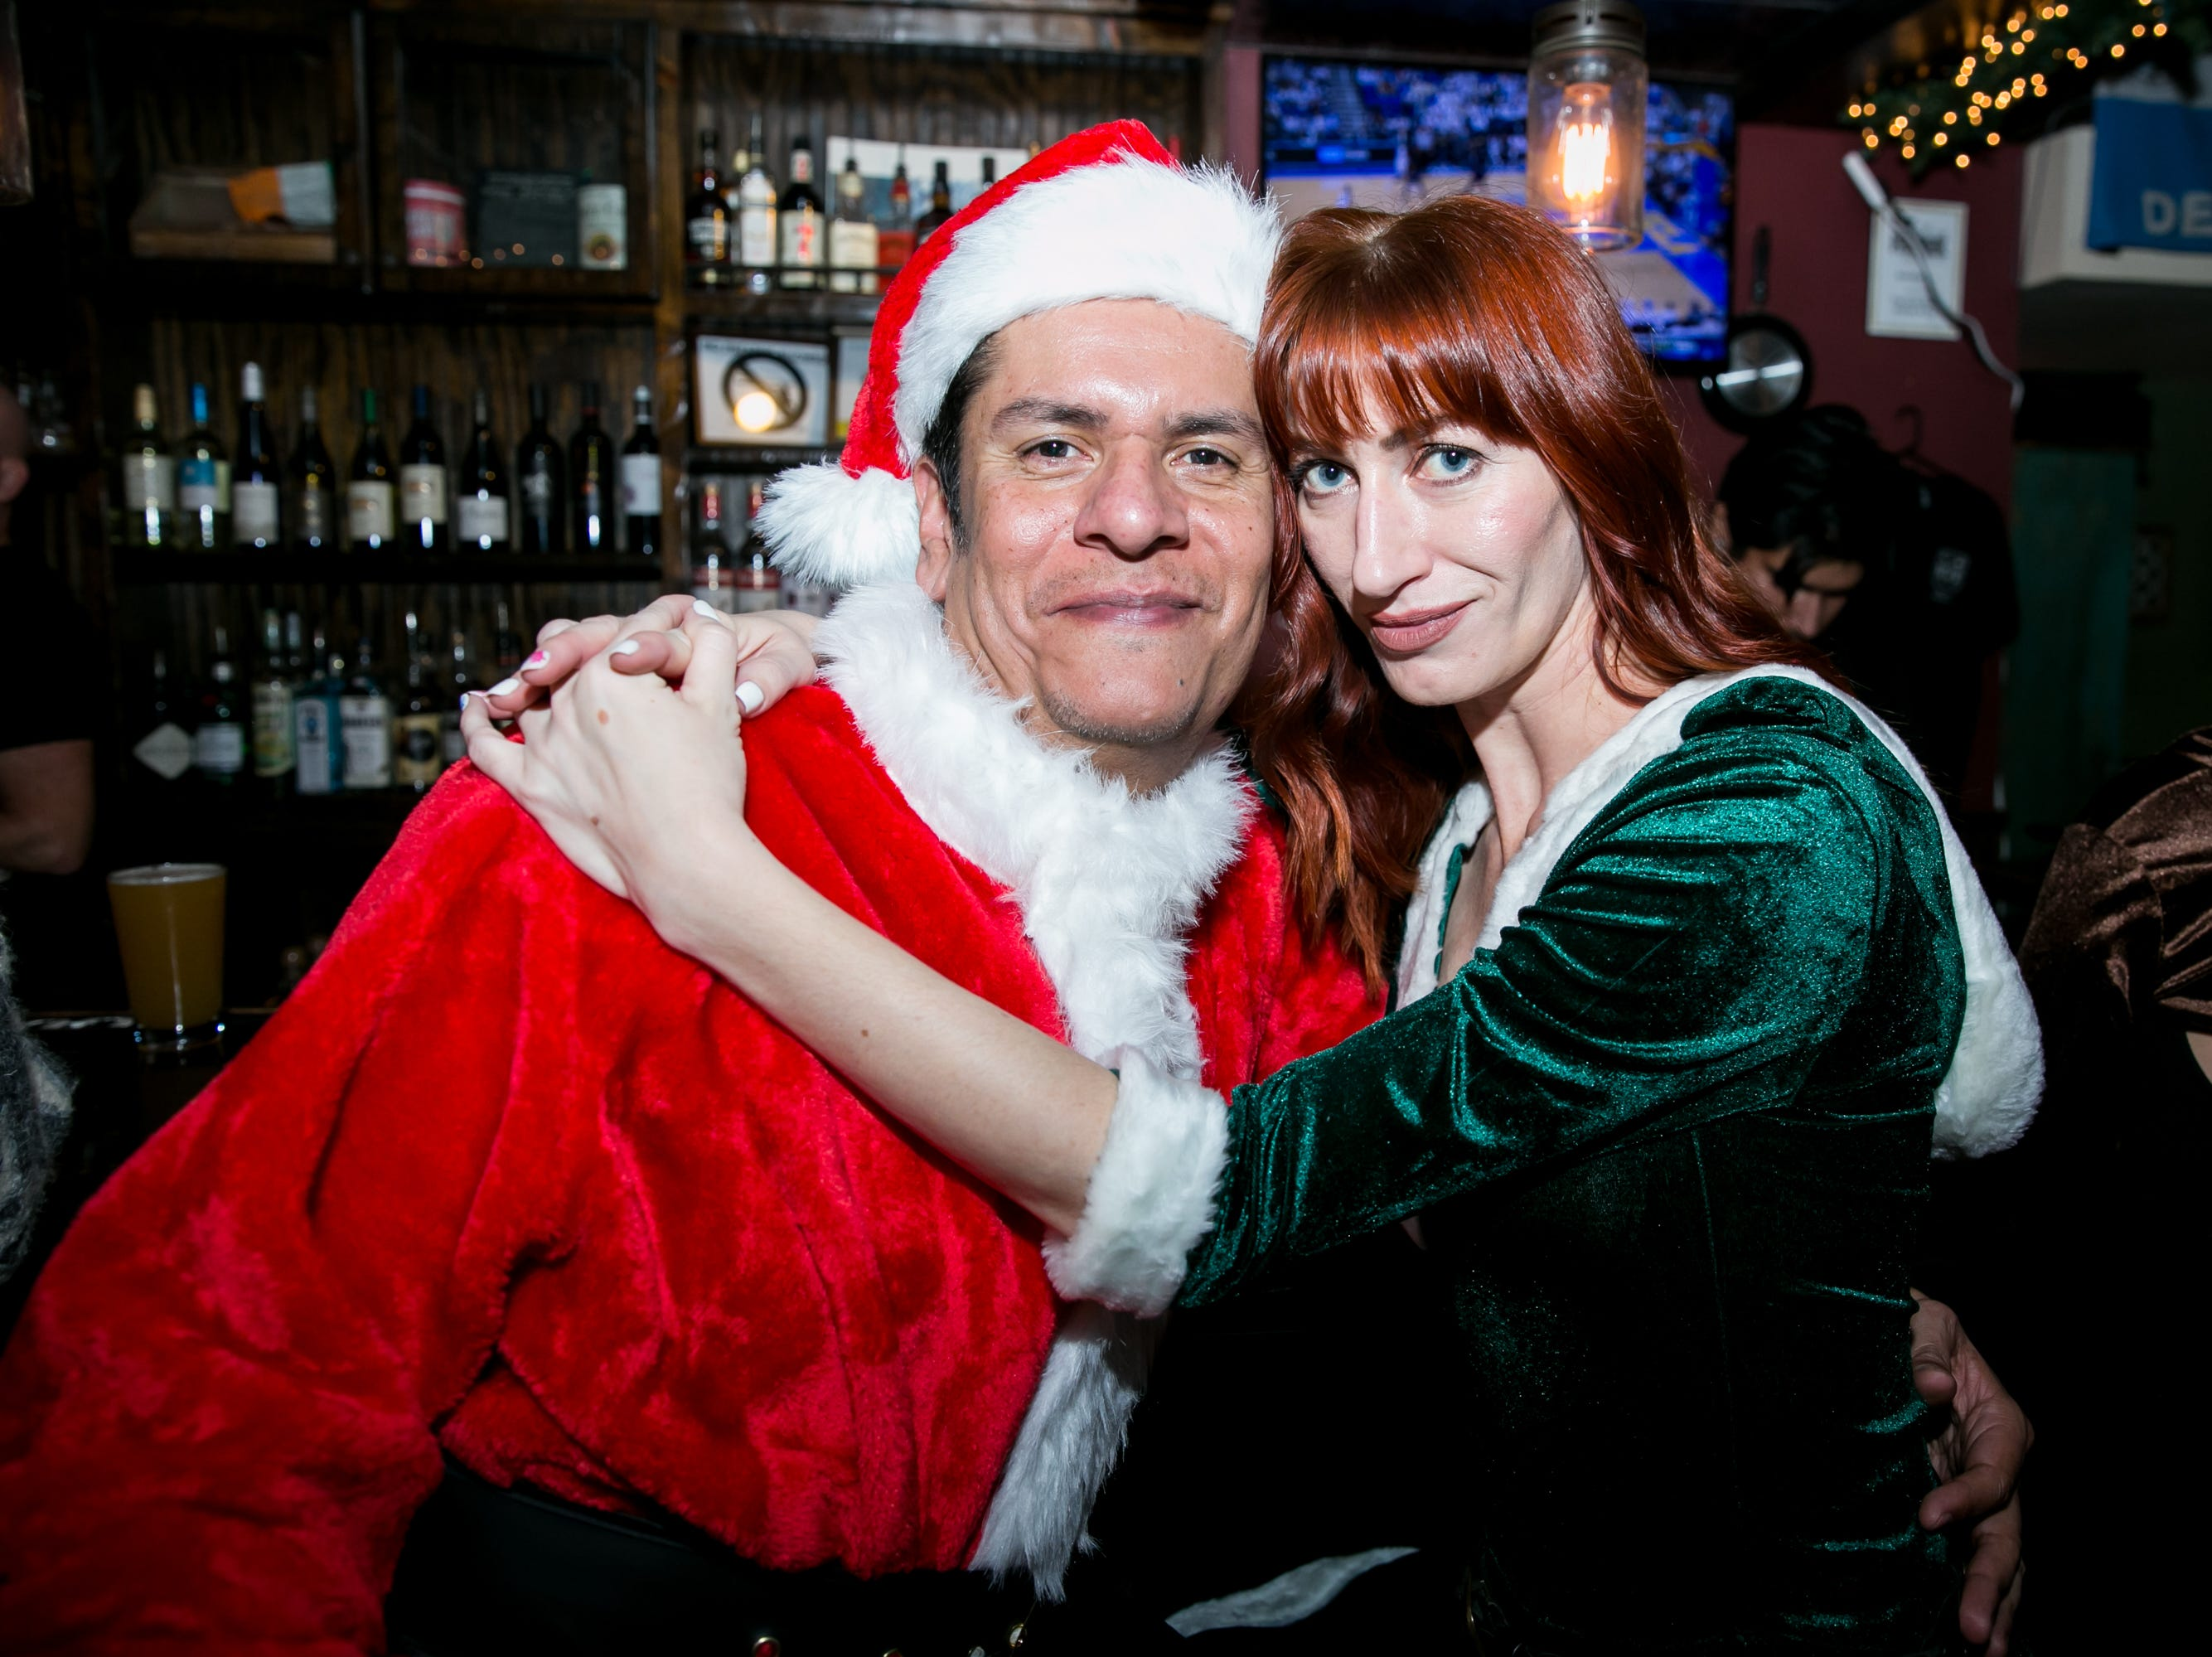 These two looked great during Santarchy on Saturday, December 8, 2018.